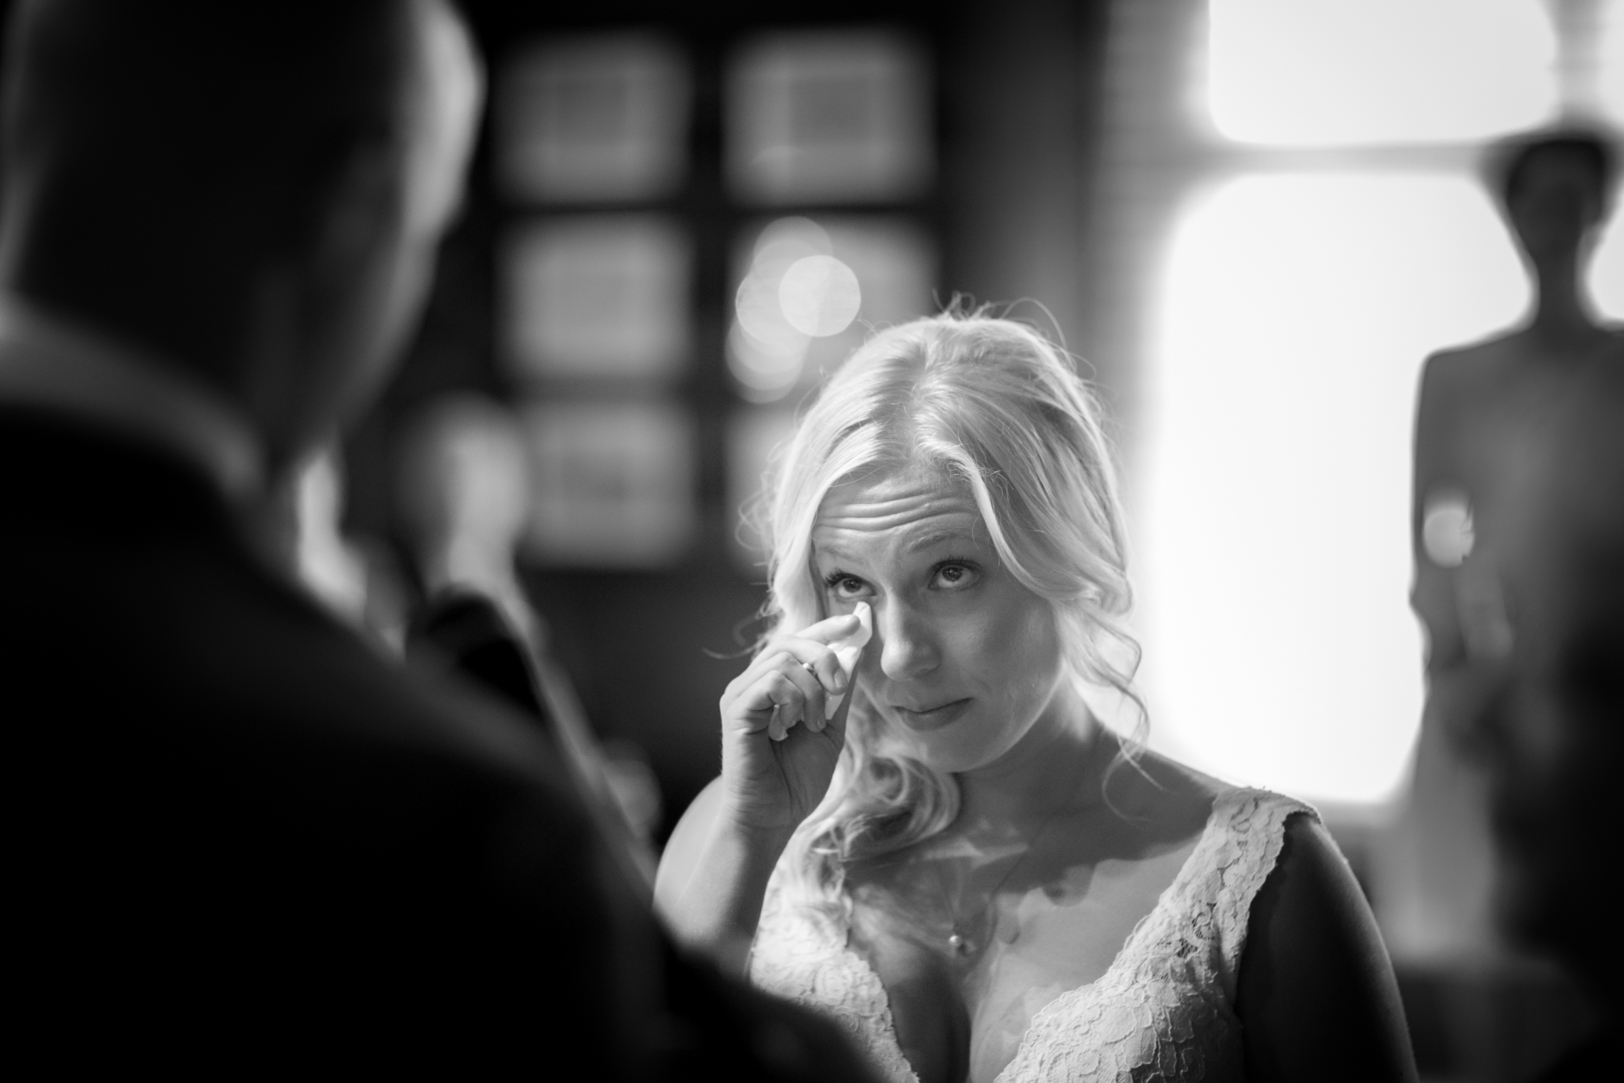 Photo of Bride Crying During Ceremony